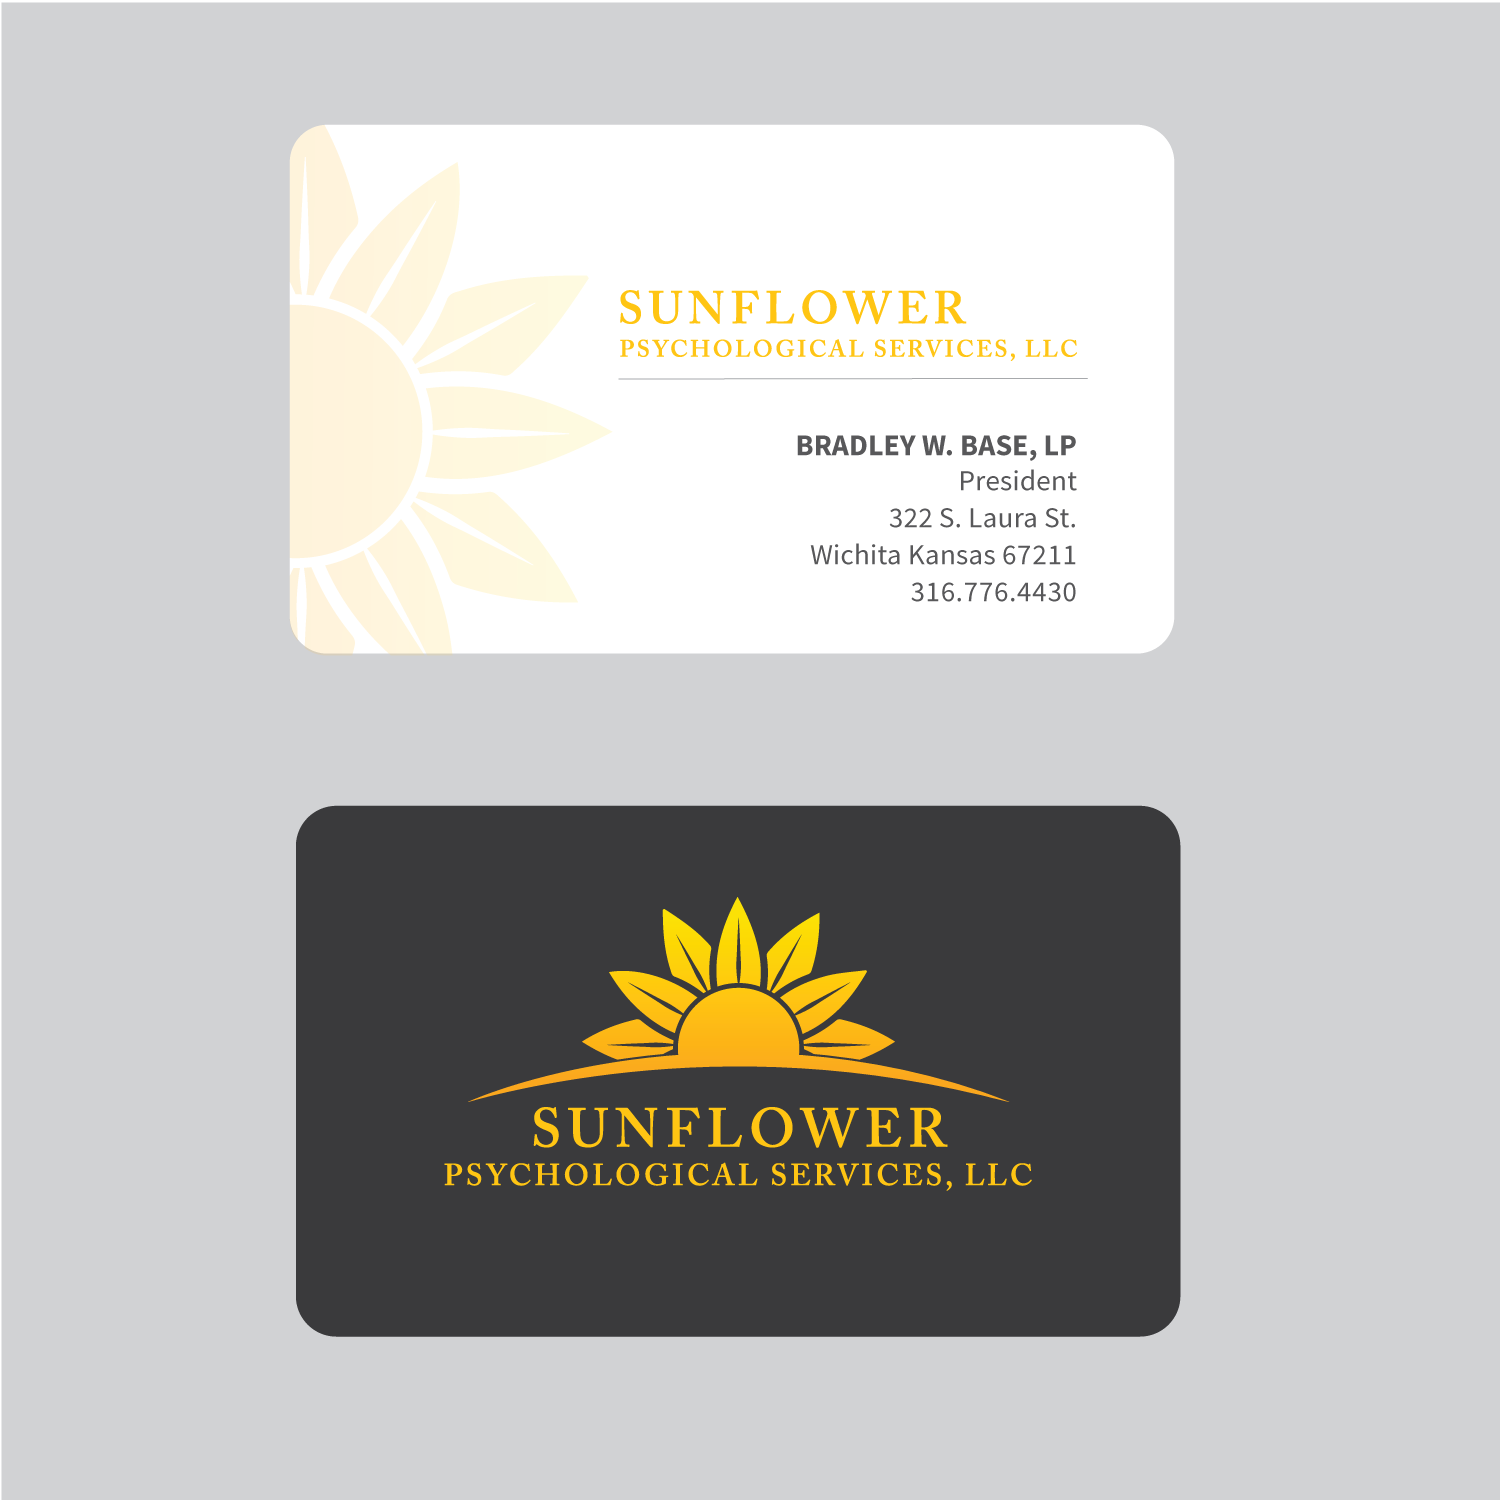 business card design by elephont designs for sunflower psychological services llc design 15215119